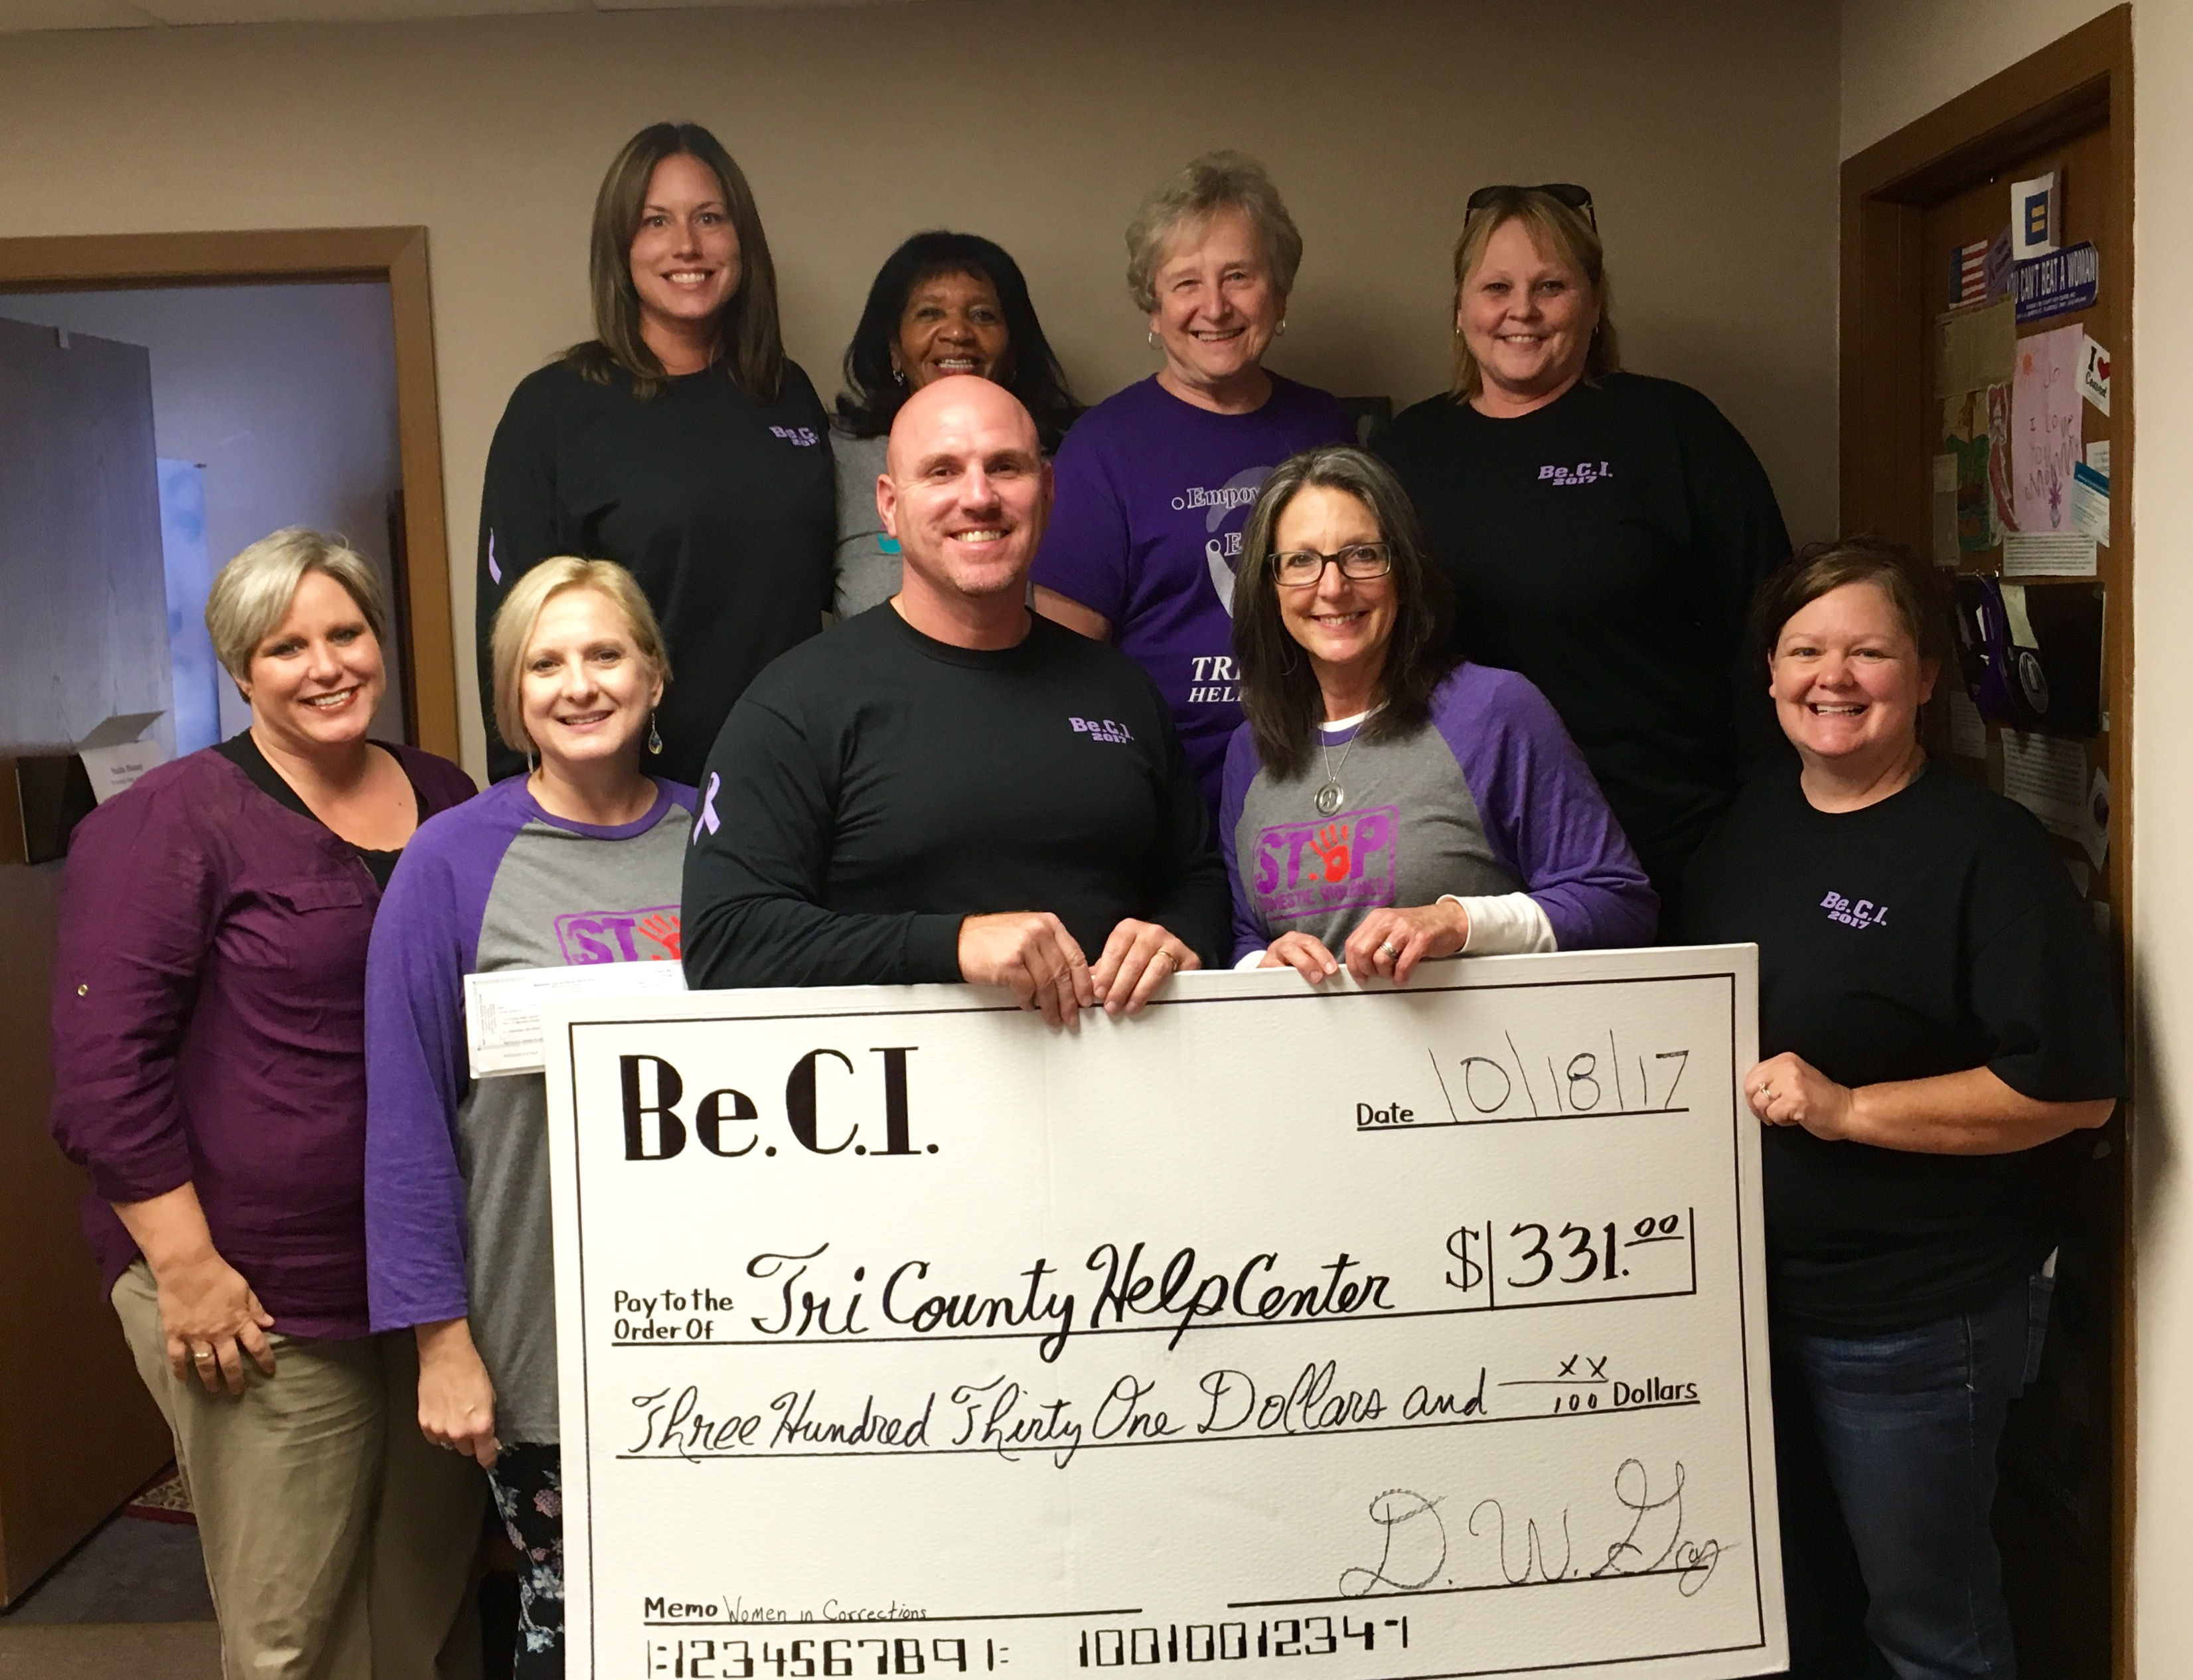 BeCI Women in Corrections Make Donation to Local Help Center